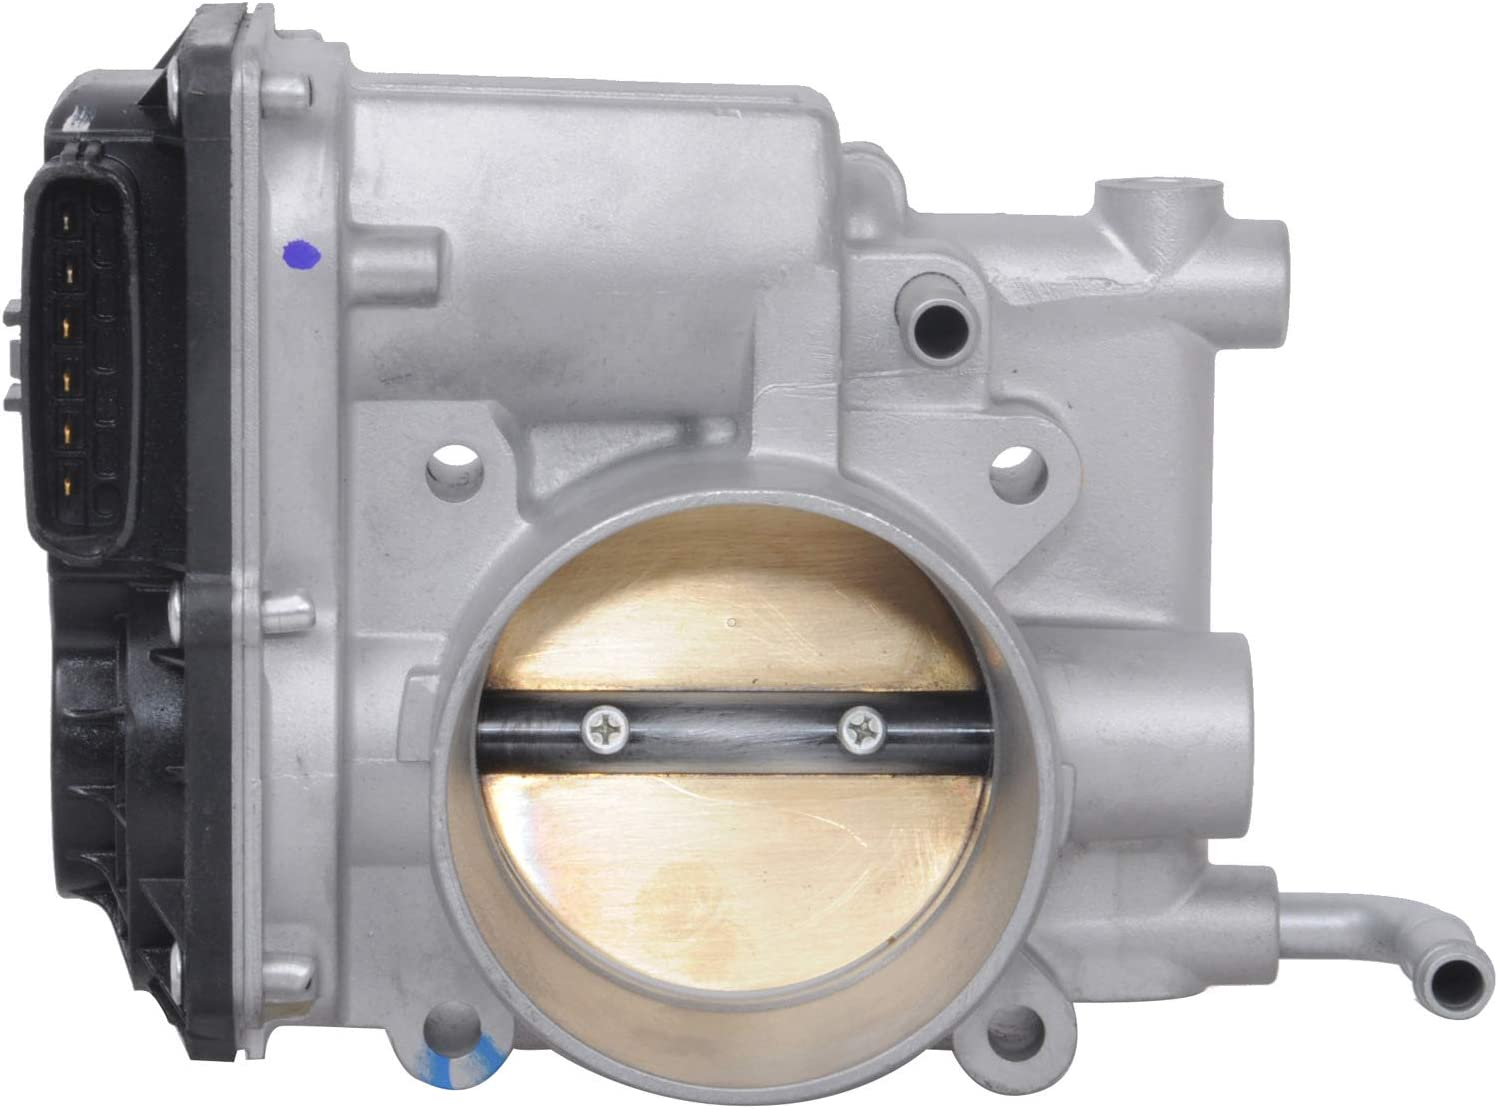 Cardone 67-2102 Remanufactured Challenge the lowest price of Japan ☆ Fuel Injection Throttle depot Body TBI